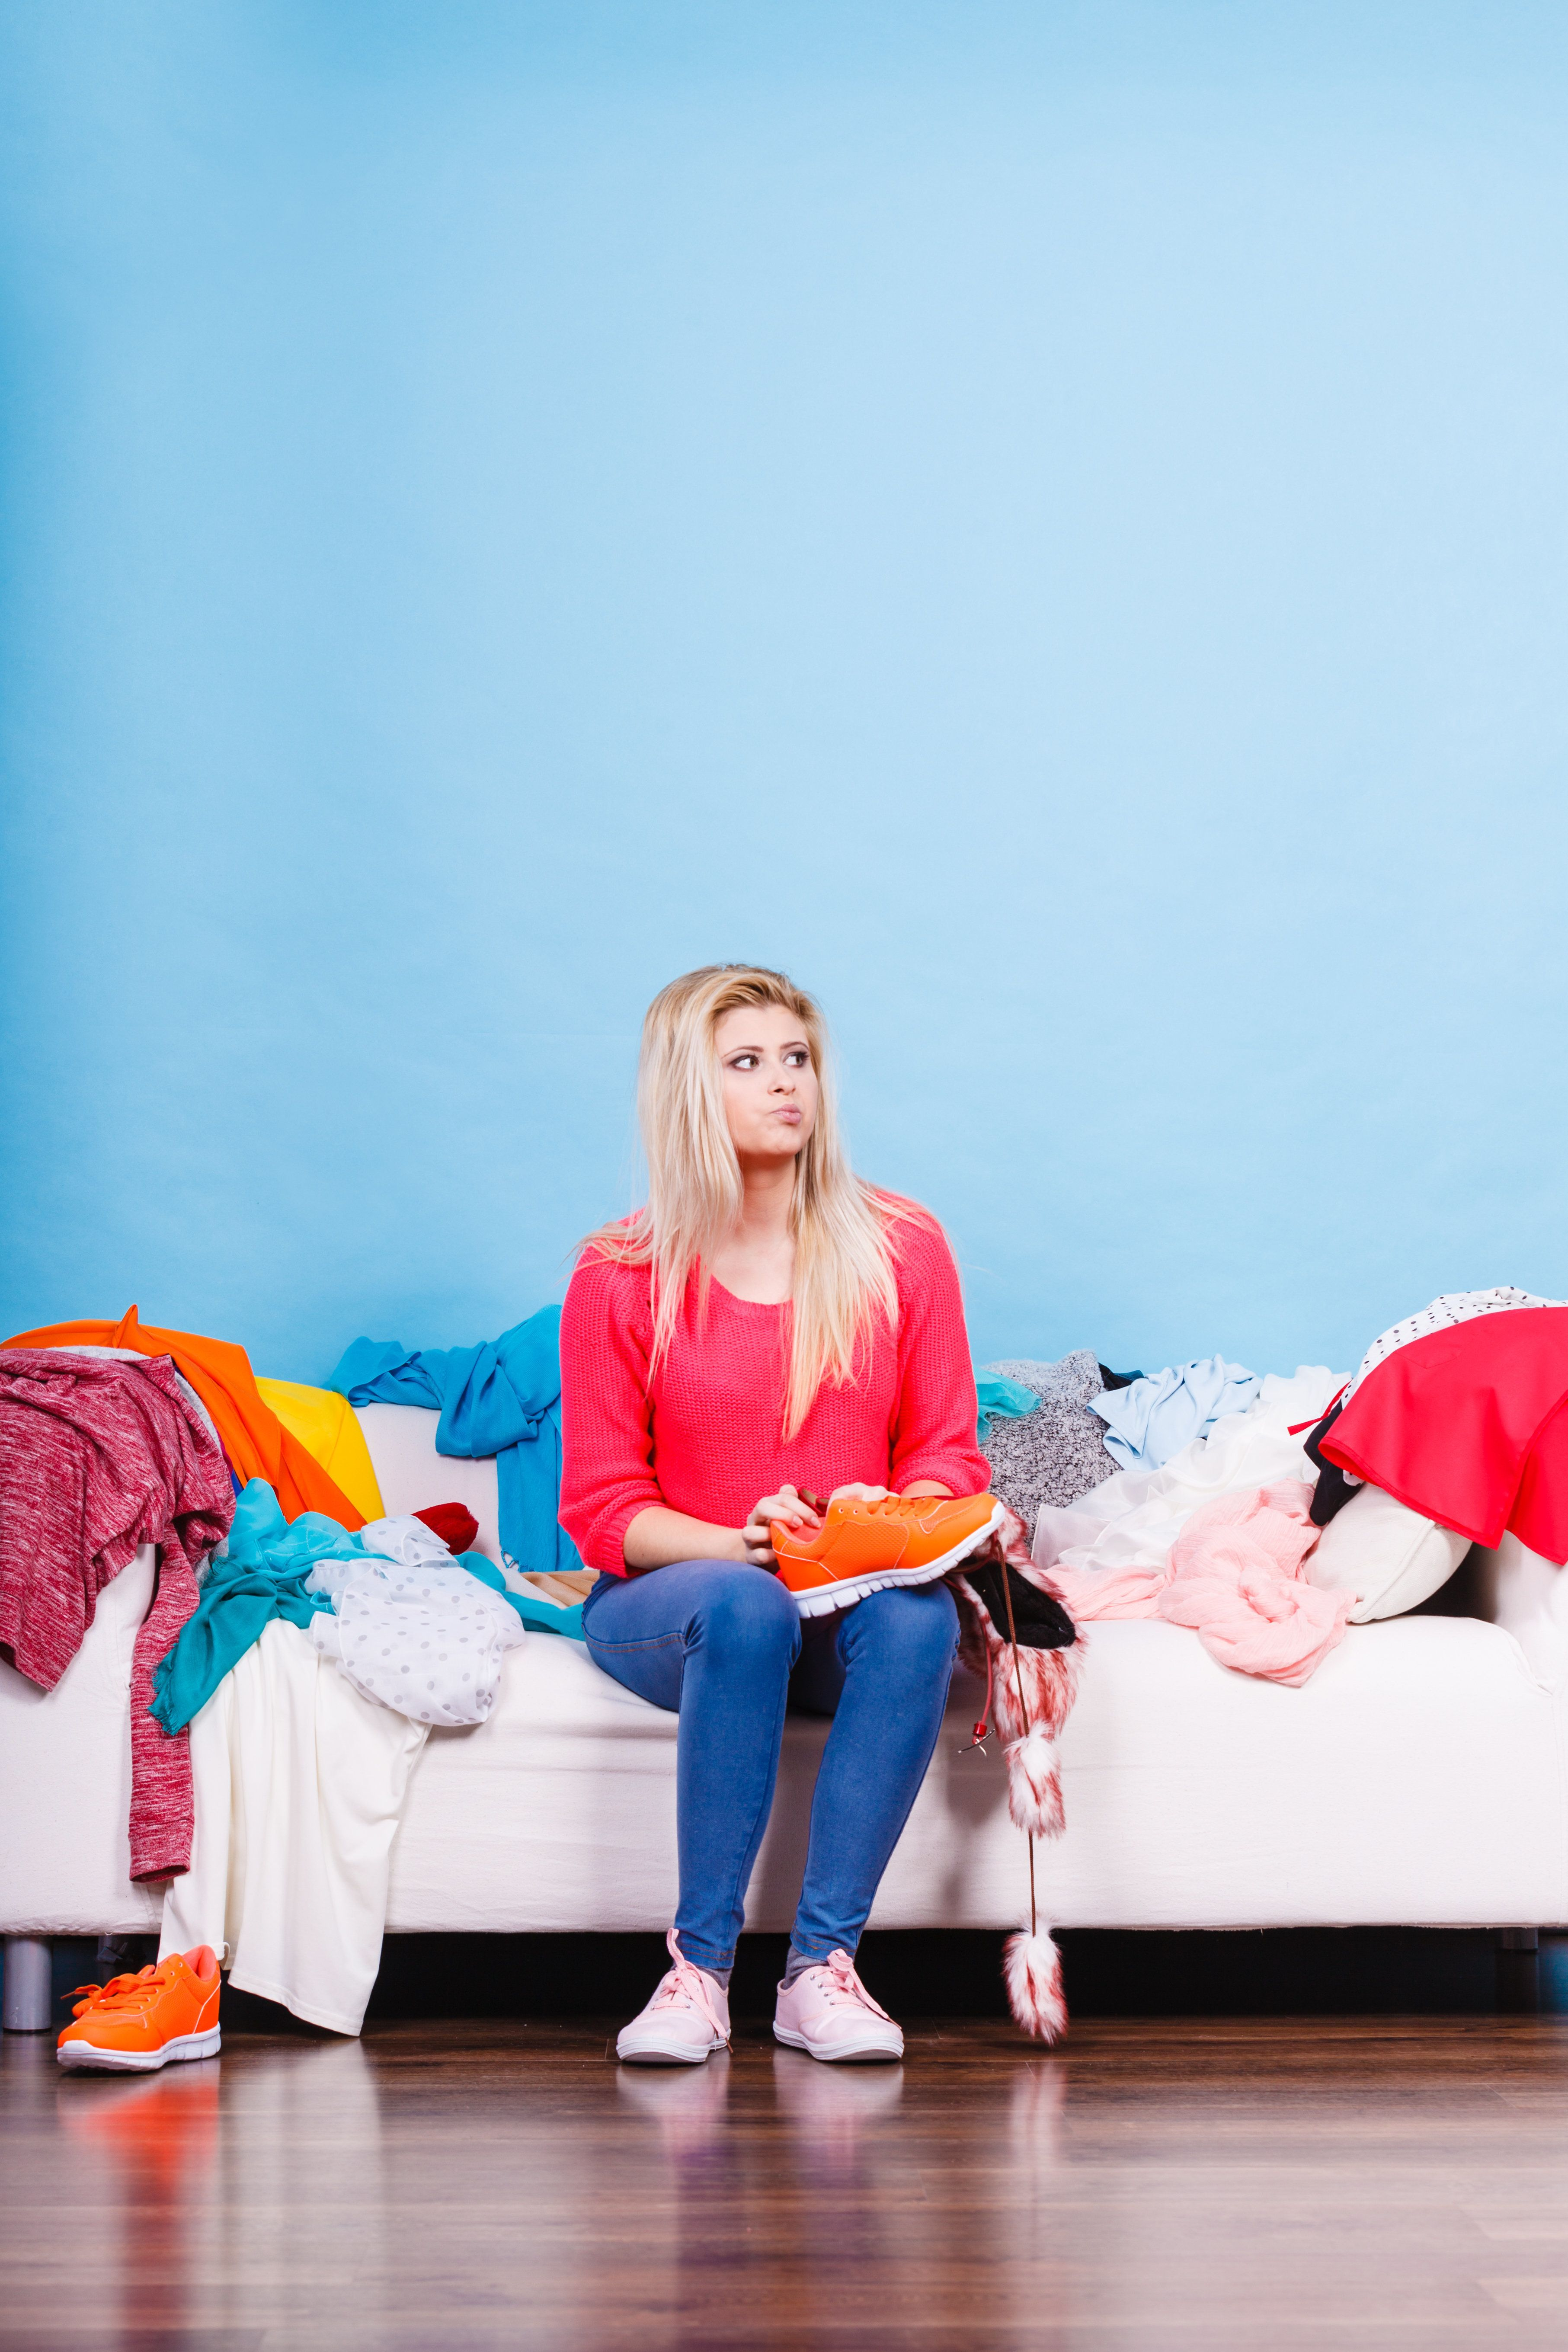 Clothing dilemmas concept. Woman does not know what to wear sitting on messy couch with piles of clothes.